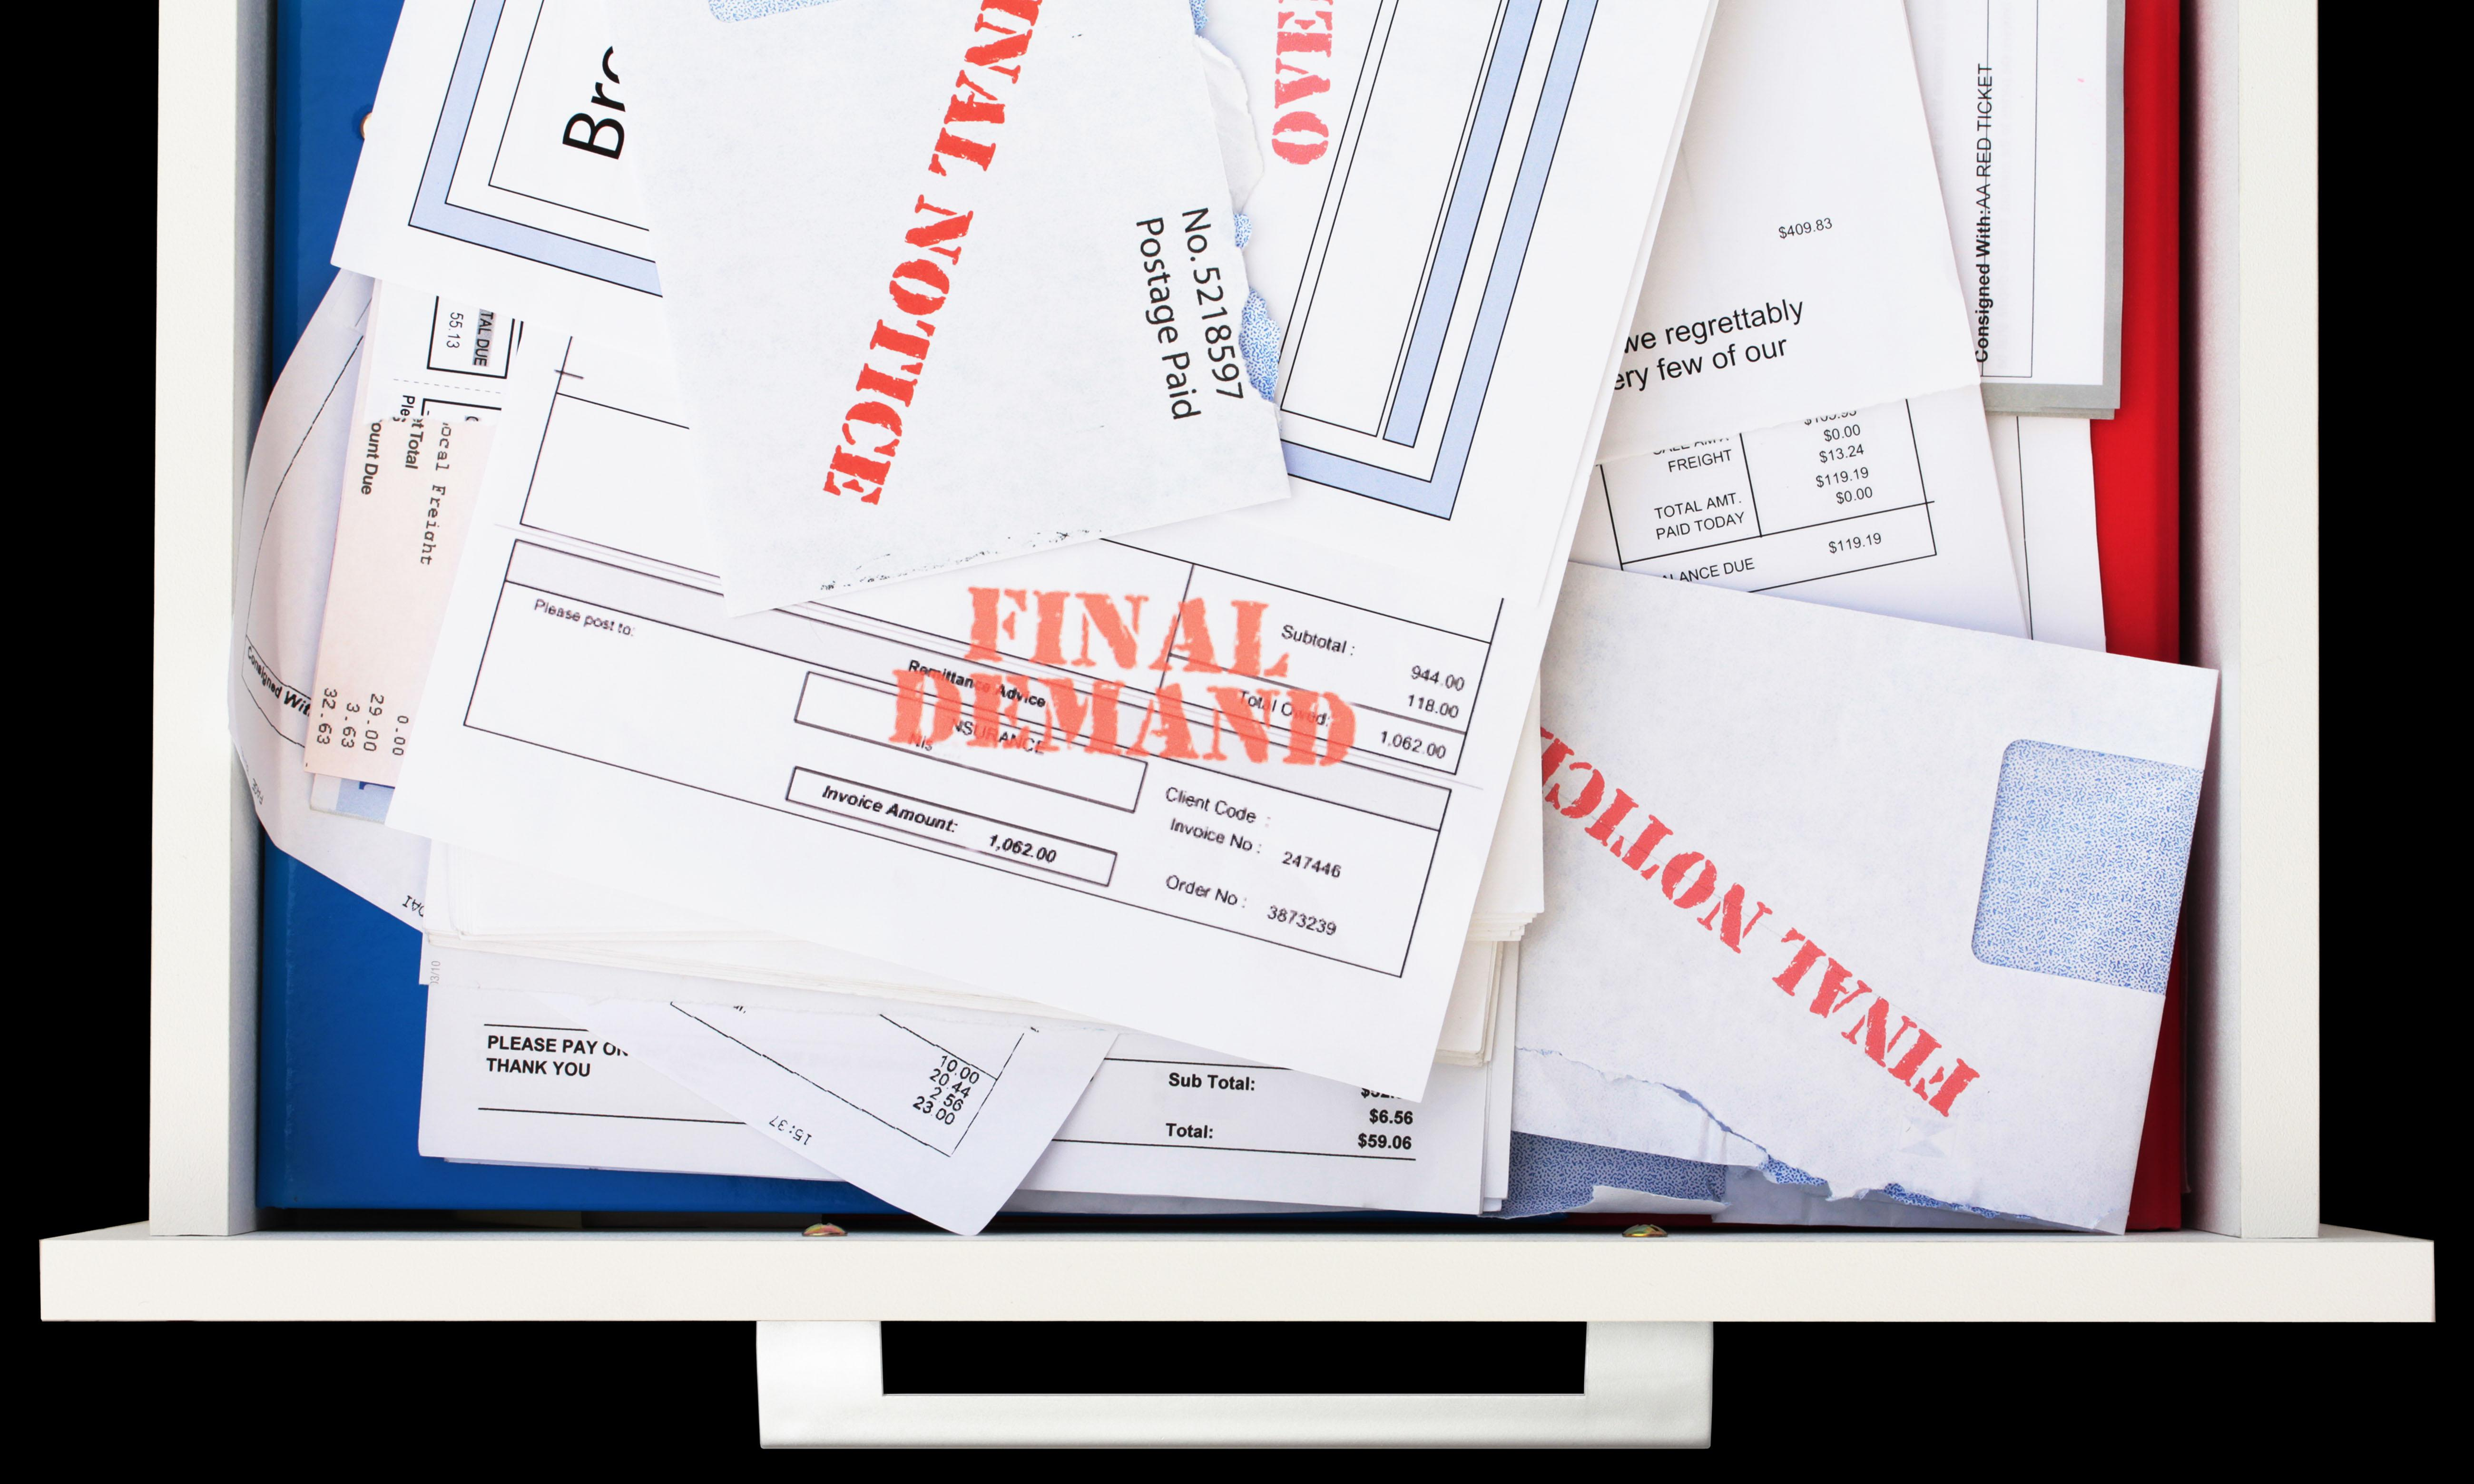 'I have no money': debt collection continues in US despite pandemic